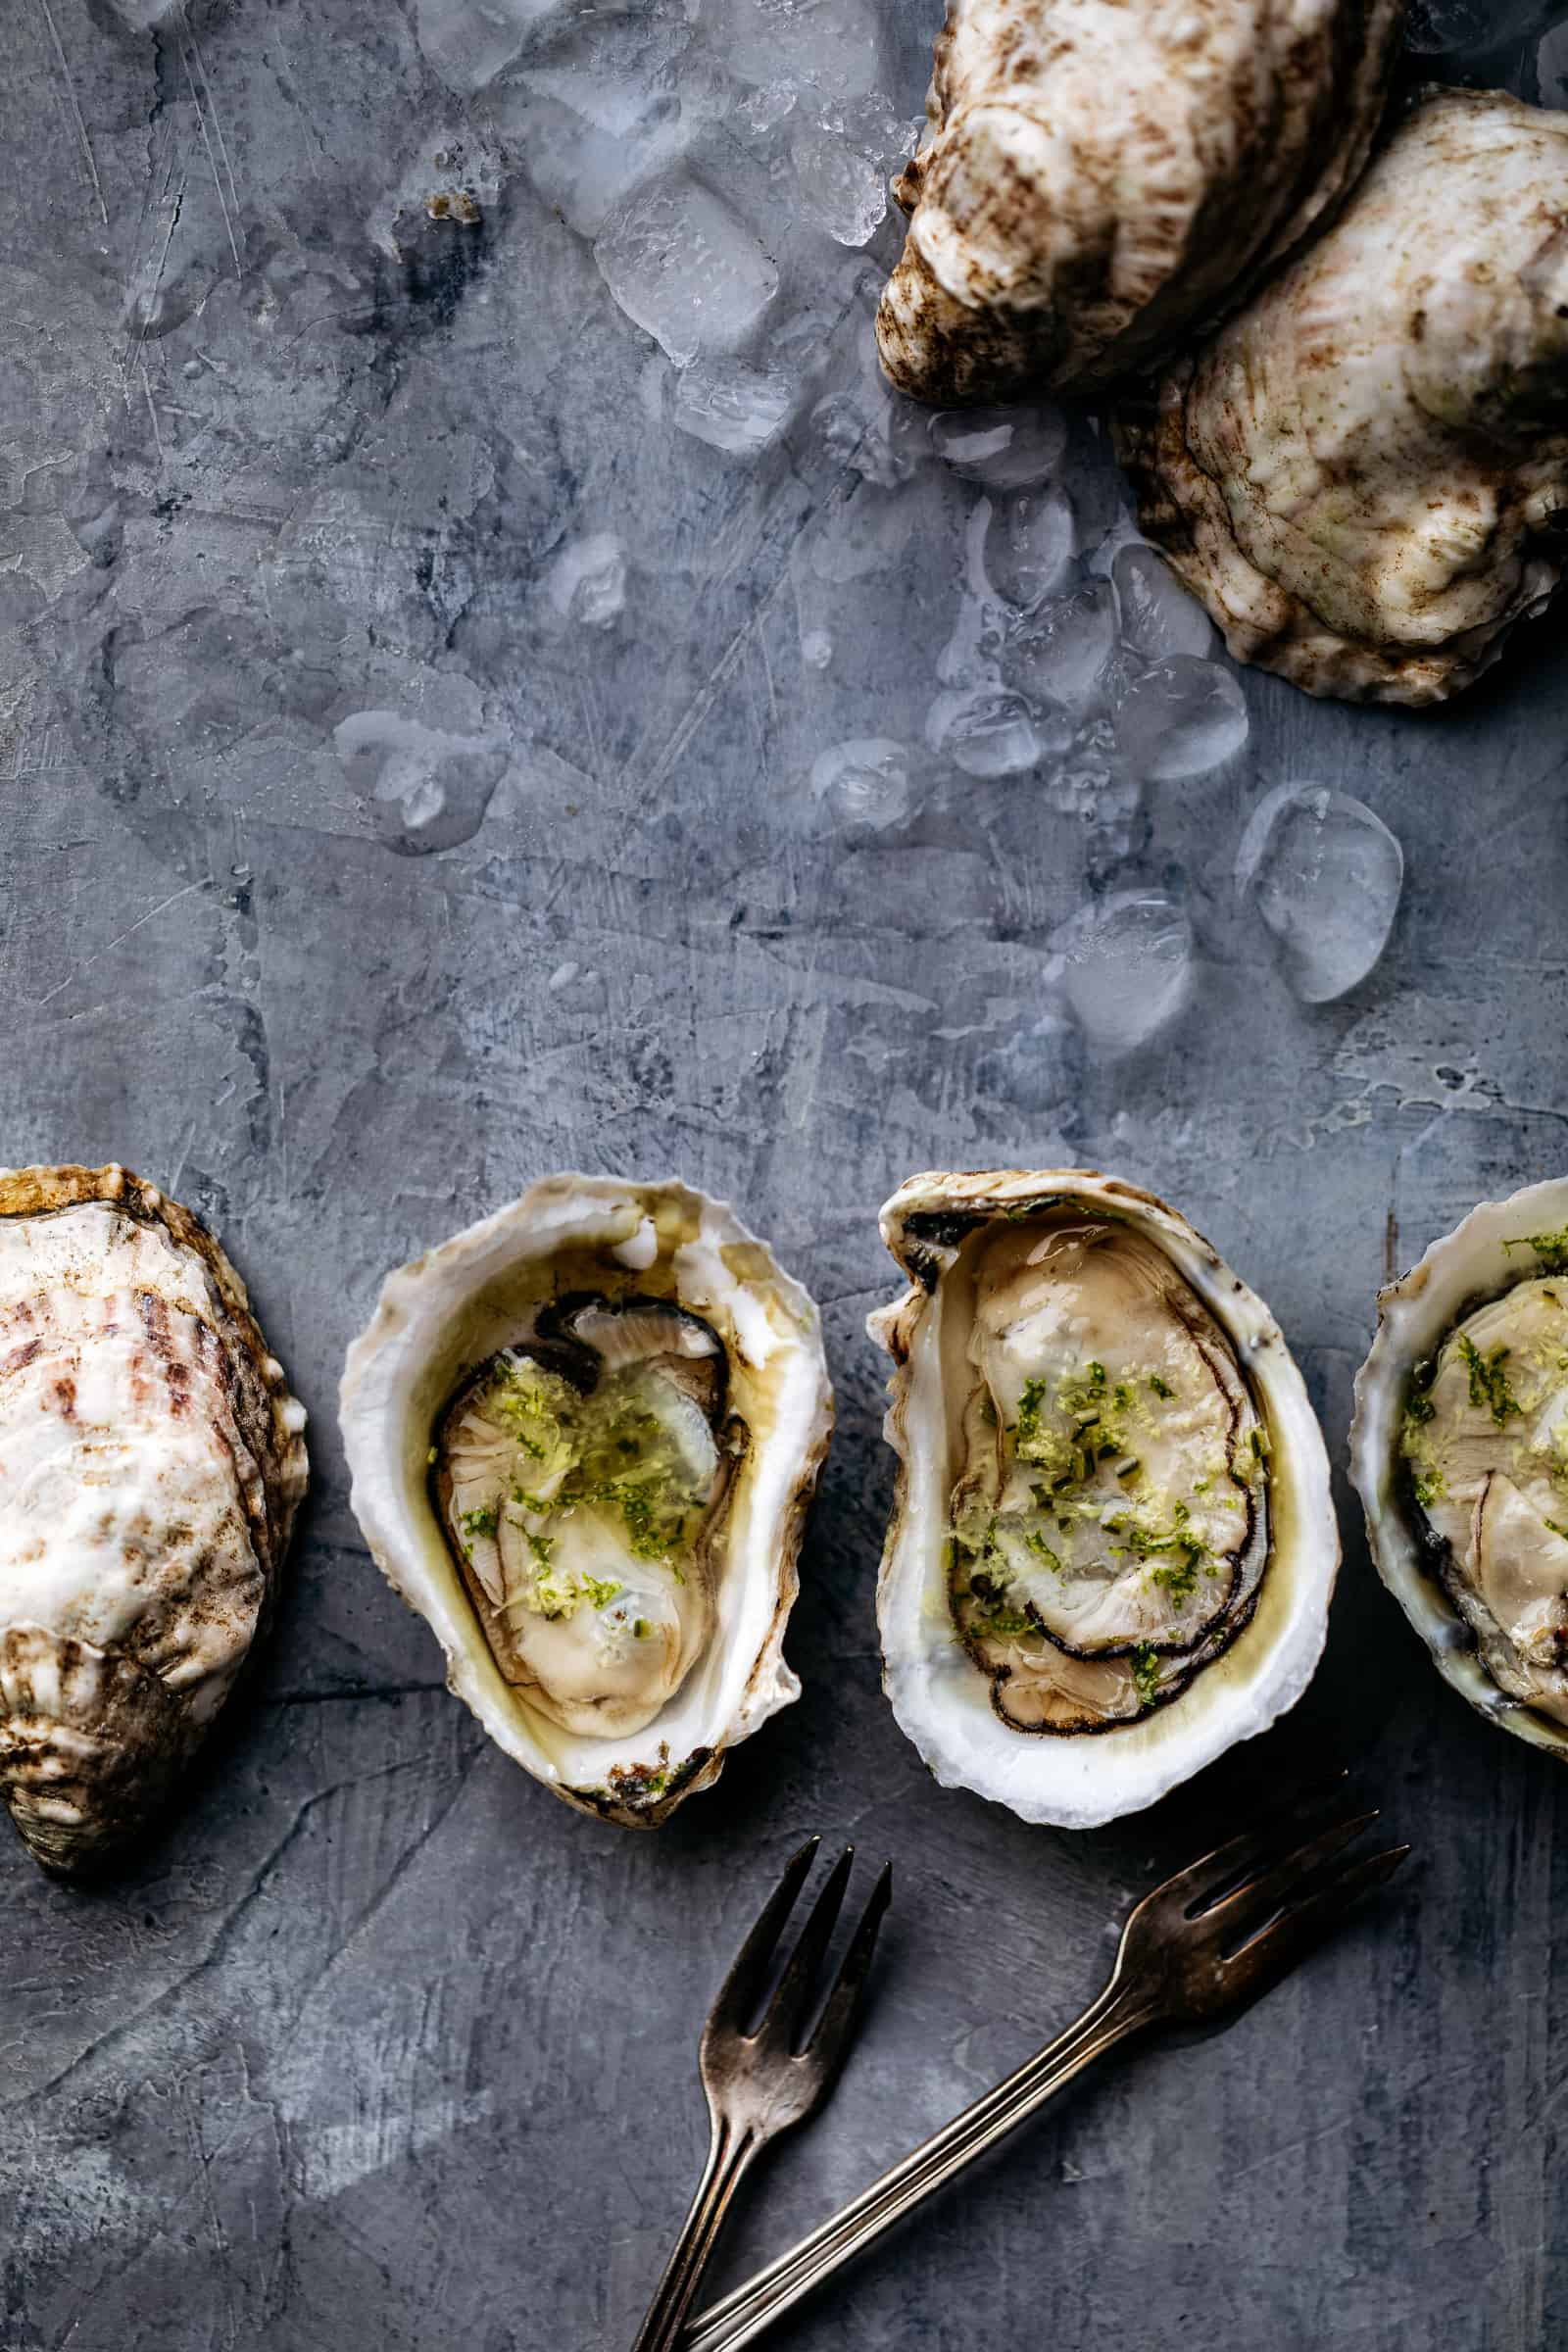 Oysters with Ginger-Lime Mignonette Sauce